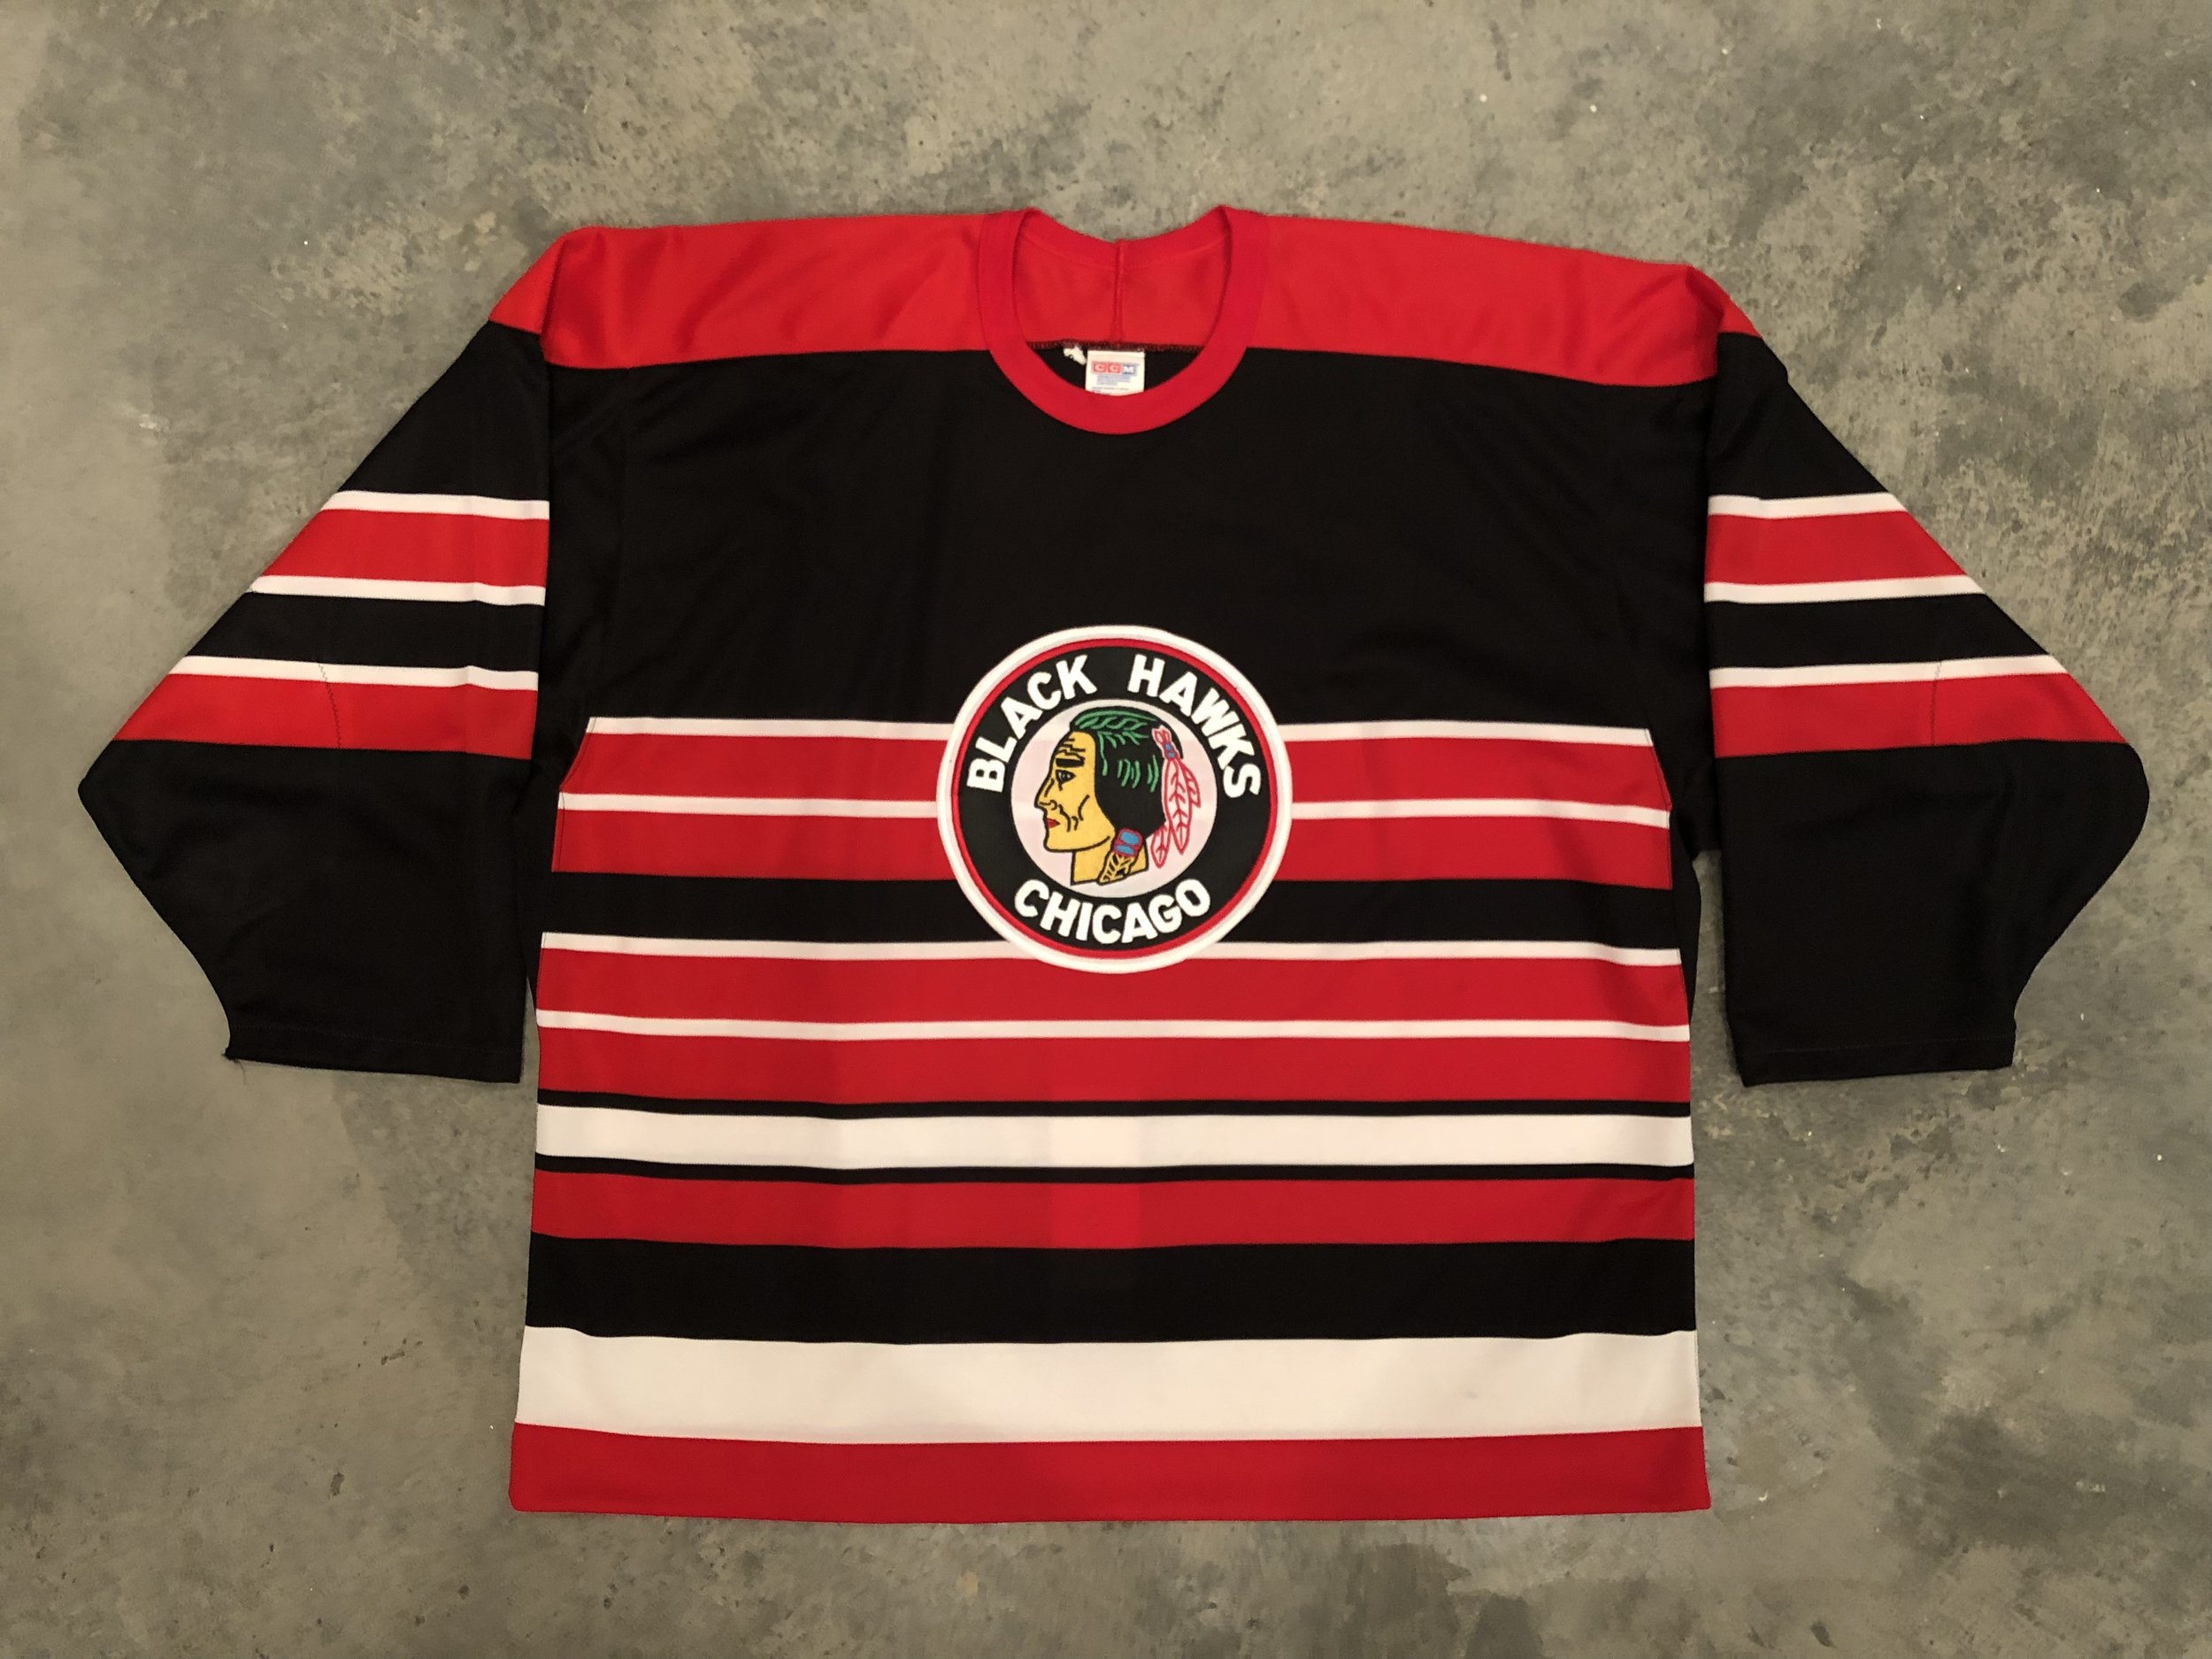 1993-94 Jeff Hackett Chicago Blackhawks TBTC Game Worn Jersey